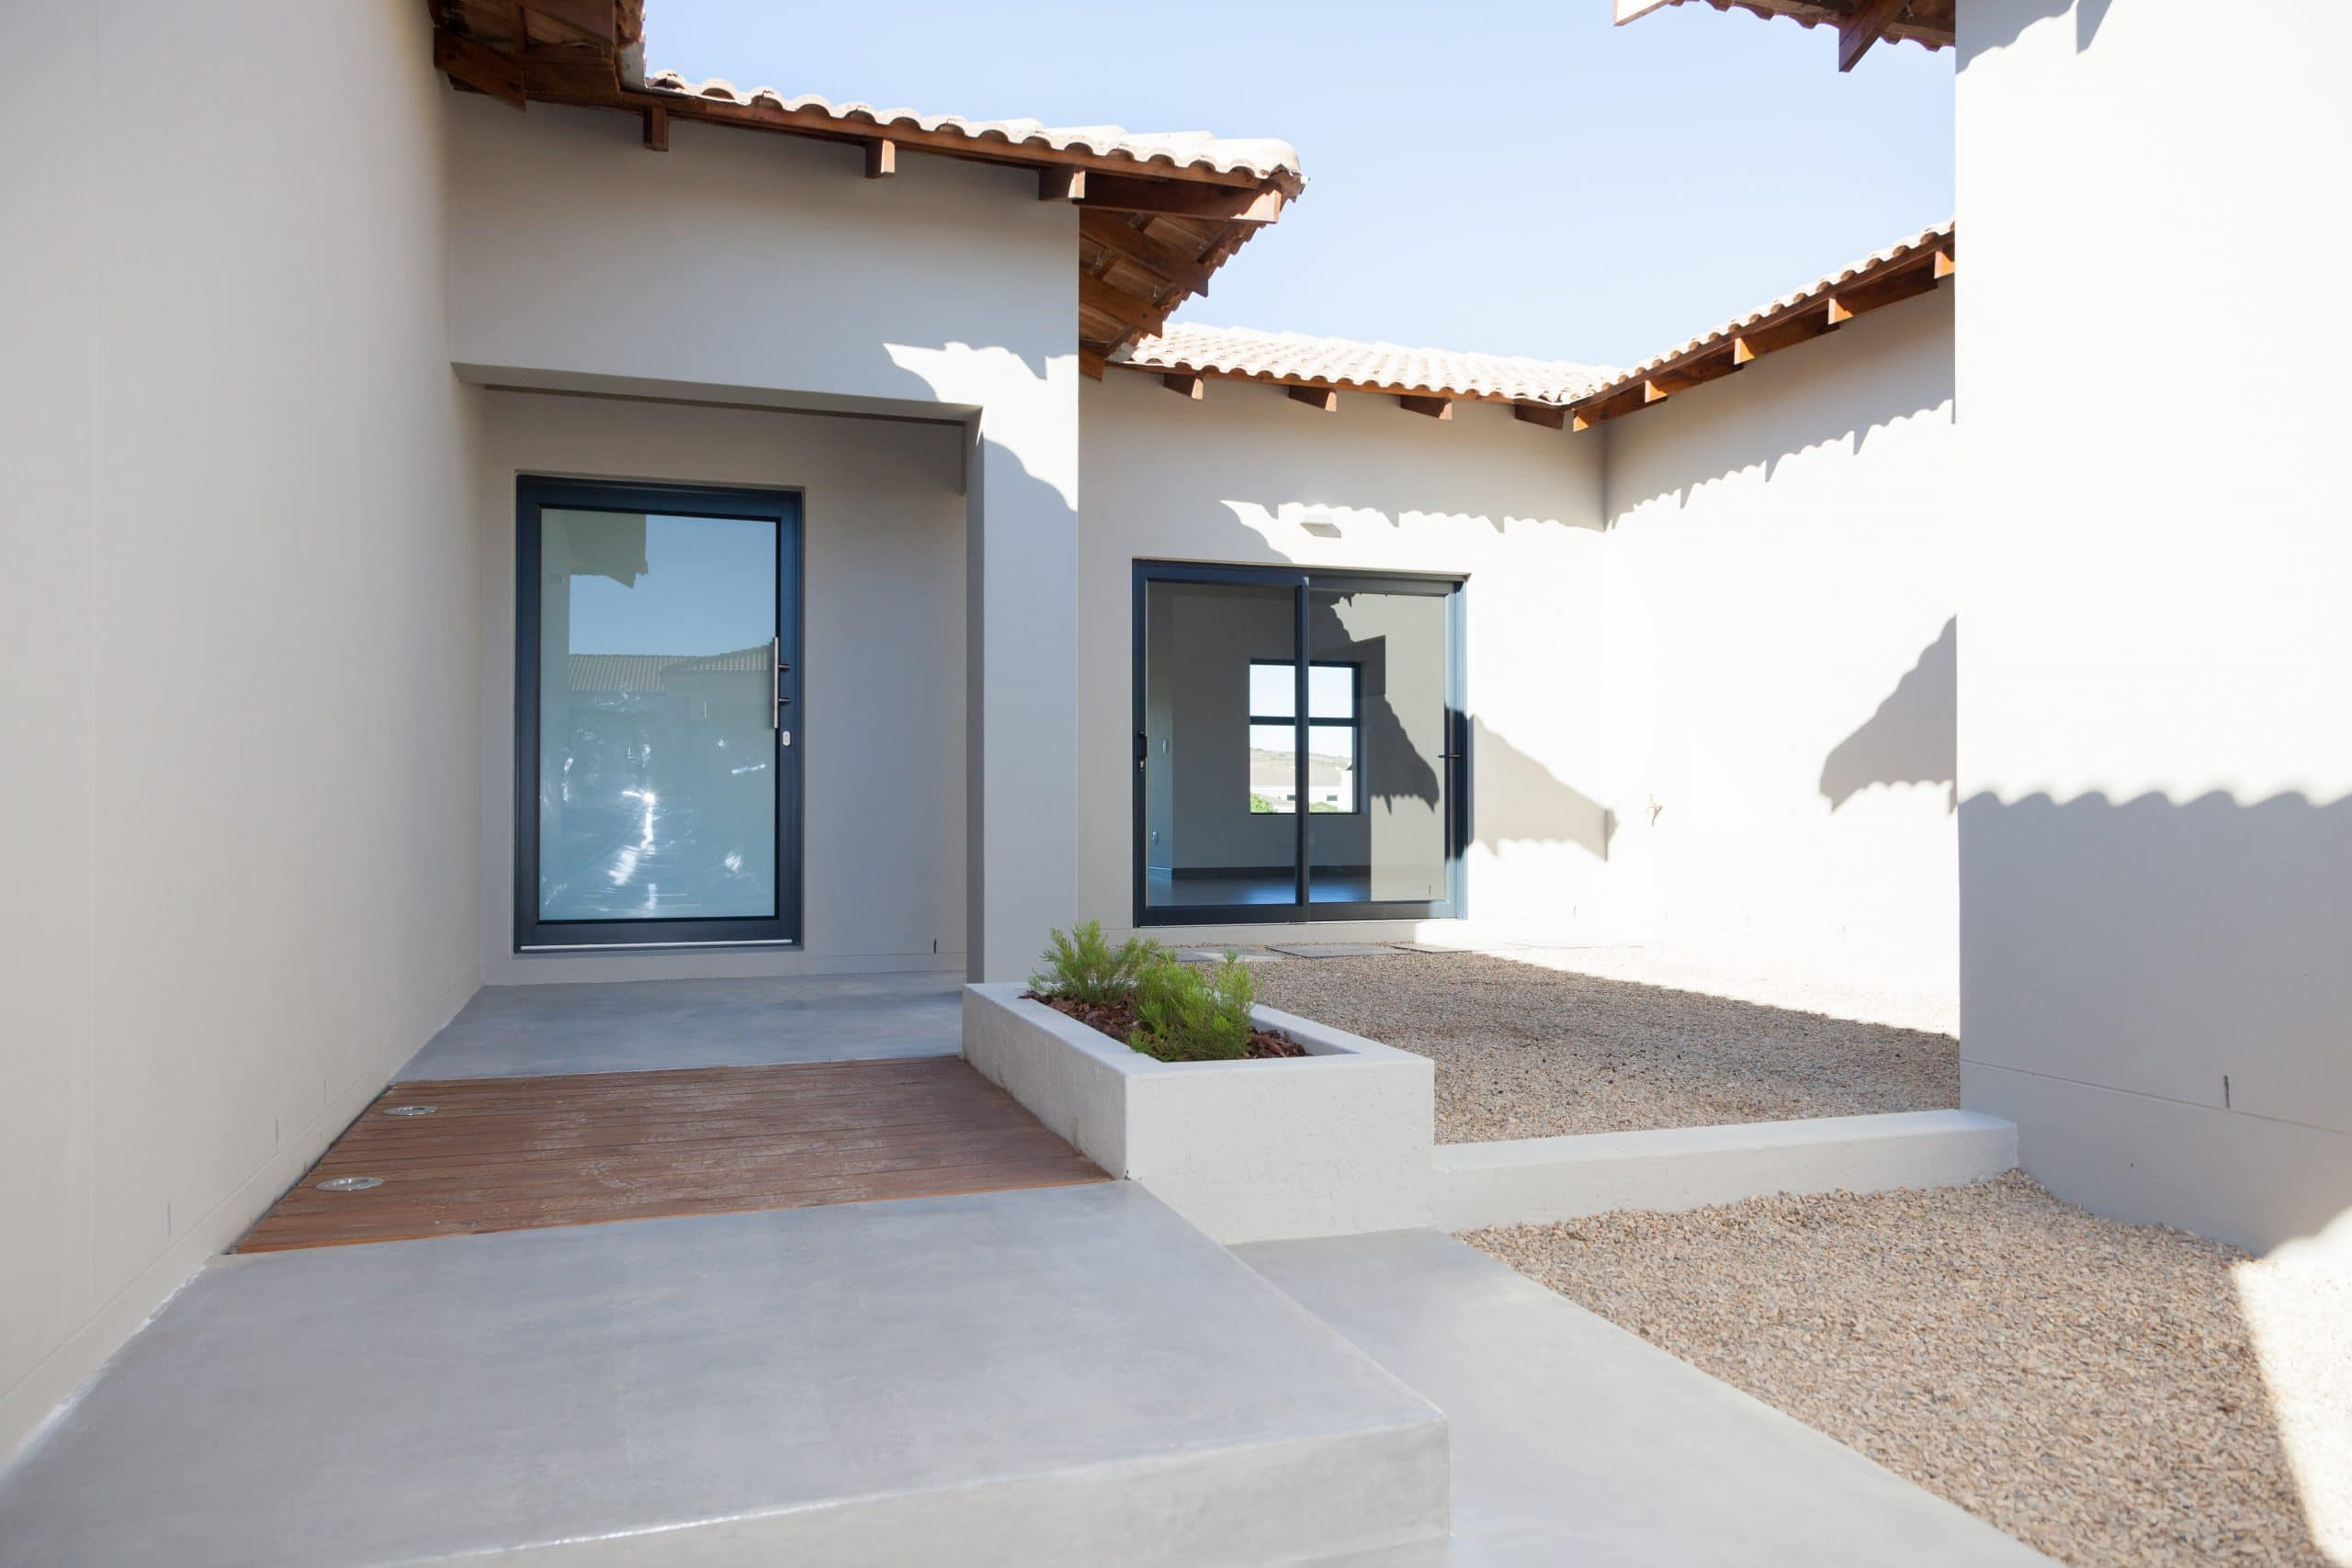 enclosed designer courtyard with flowerbox screed floor and wooden timber decking langebaan country estate